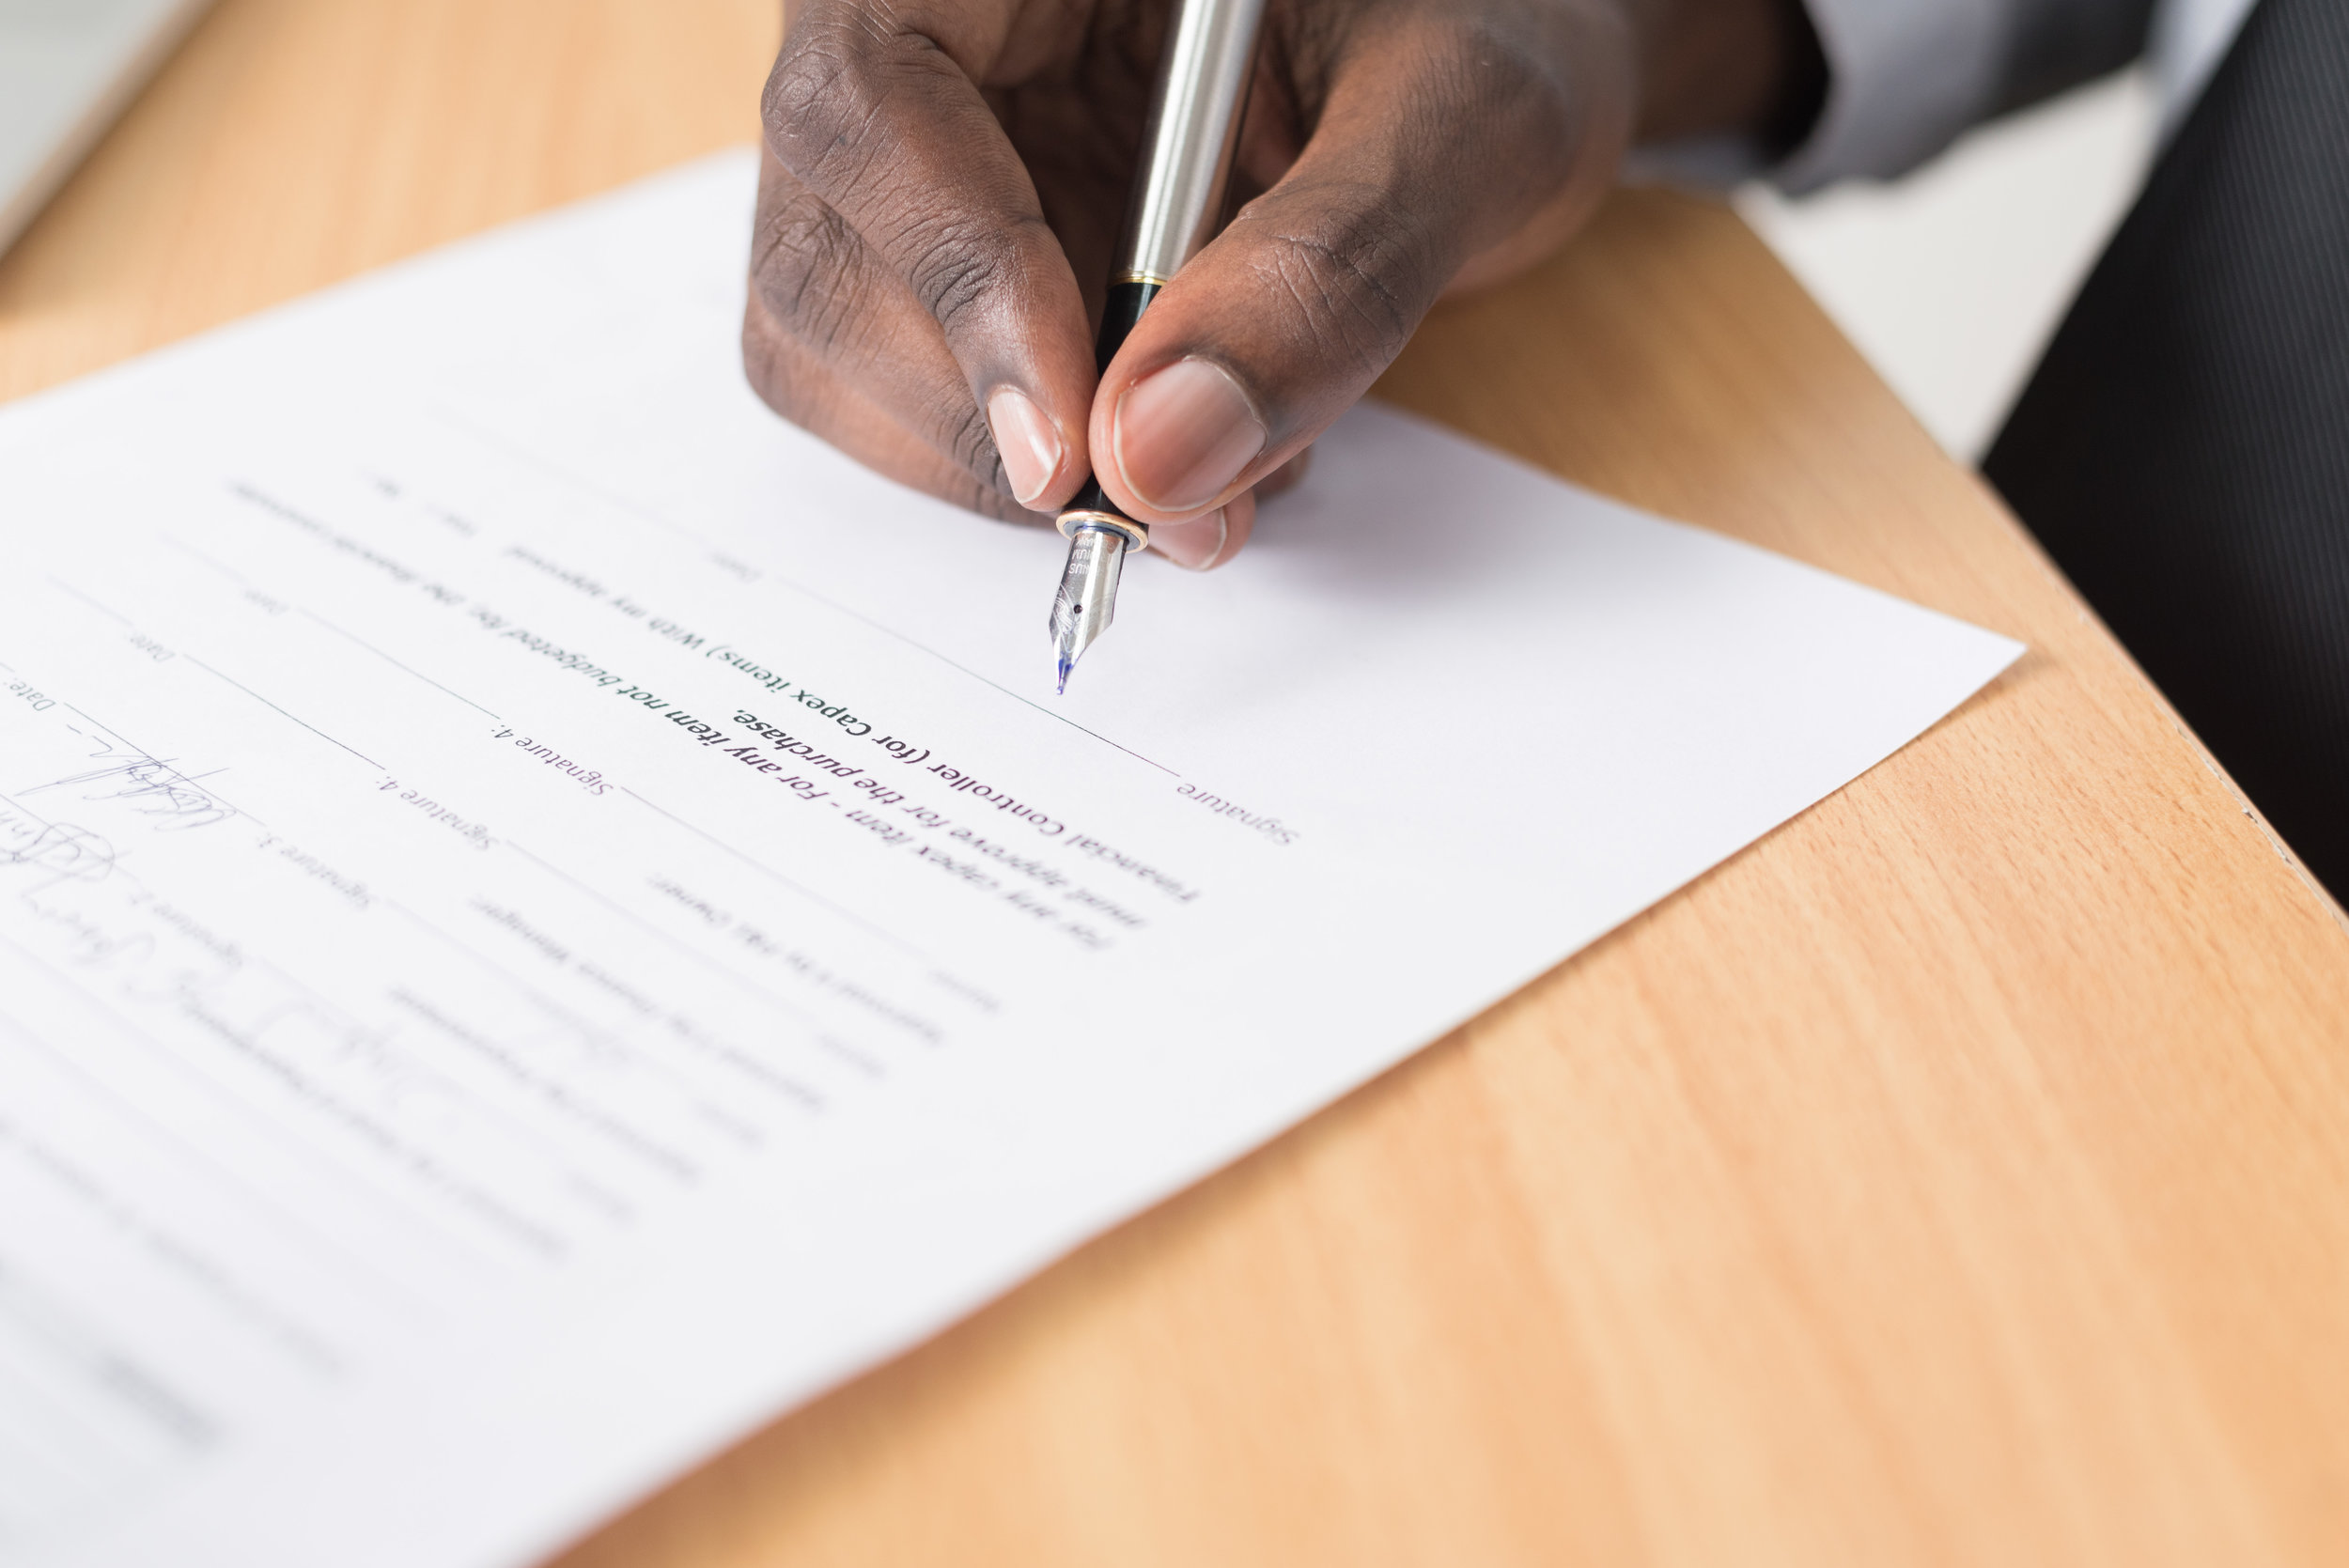 Contract management - Record contract deliverables, instruct to perform work, track invoices and authorise payments.